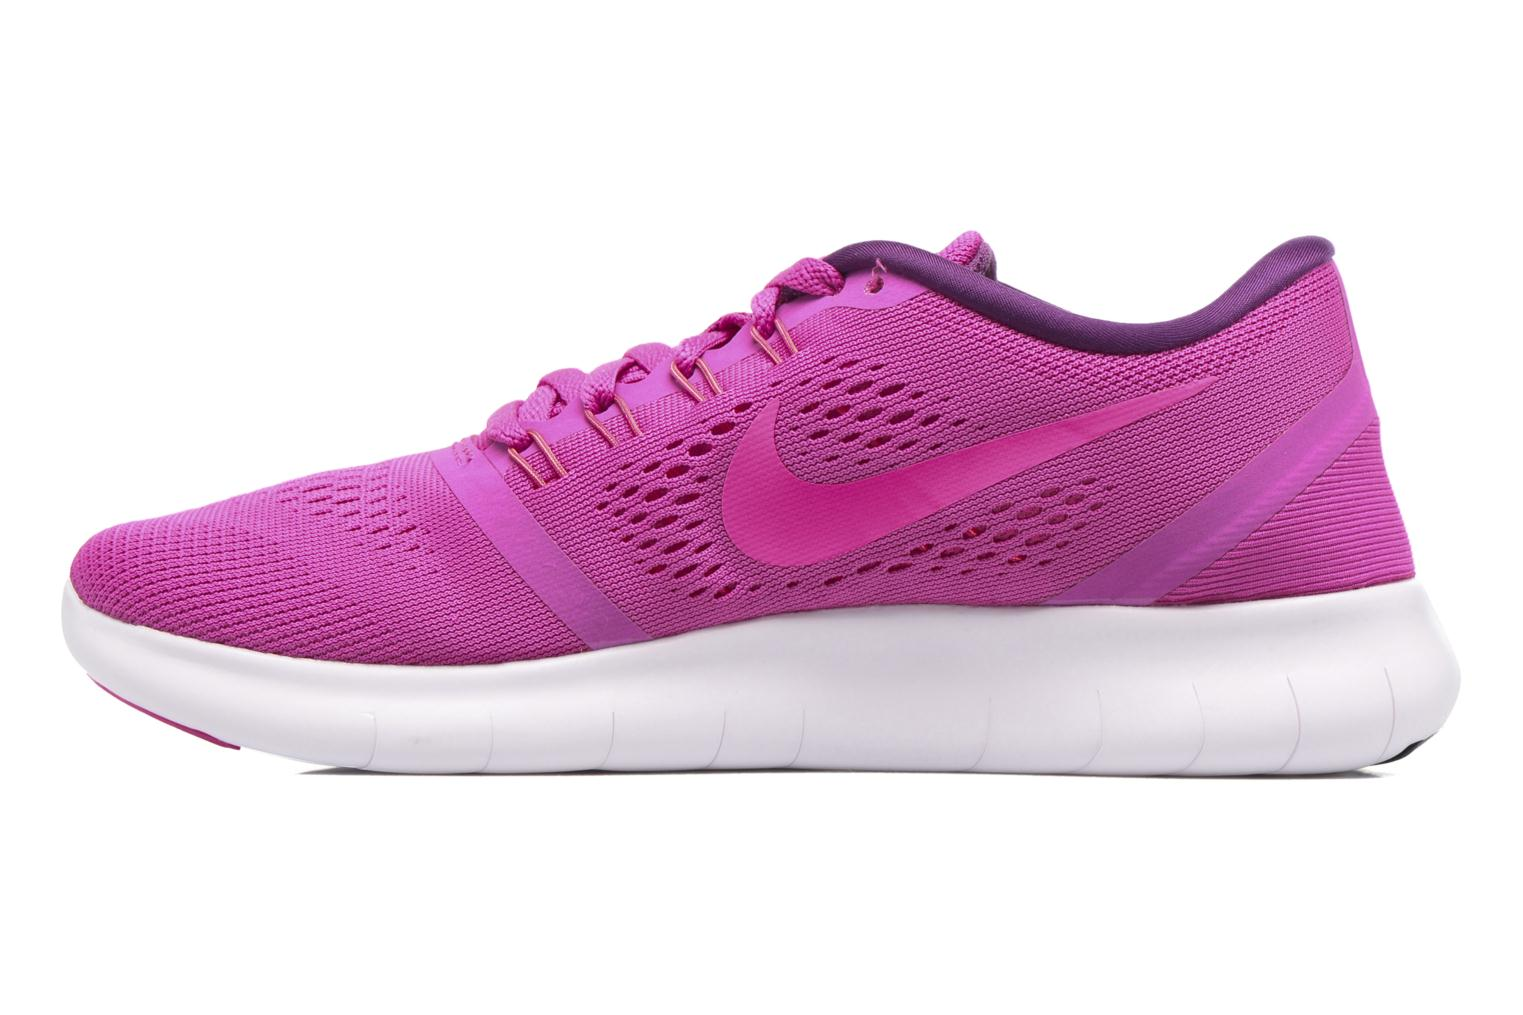 Chaussures de sport Nike Wmns Nike Free Rn Rose vue face